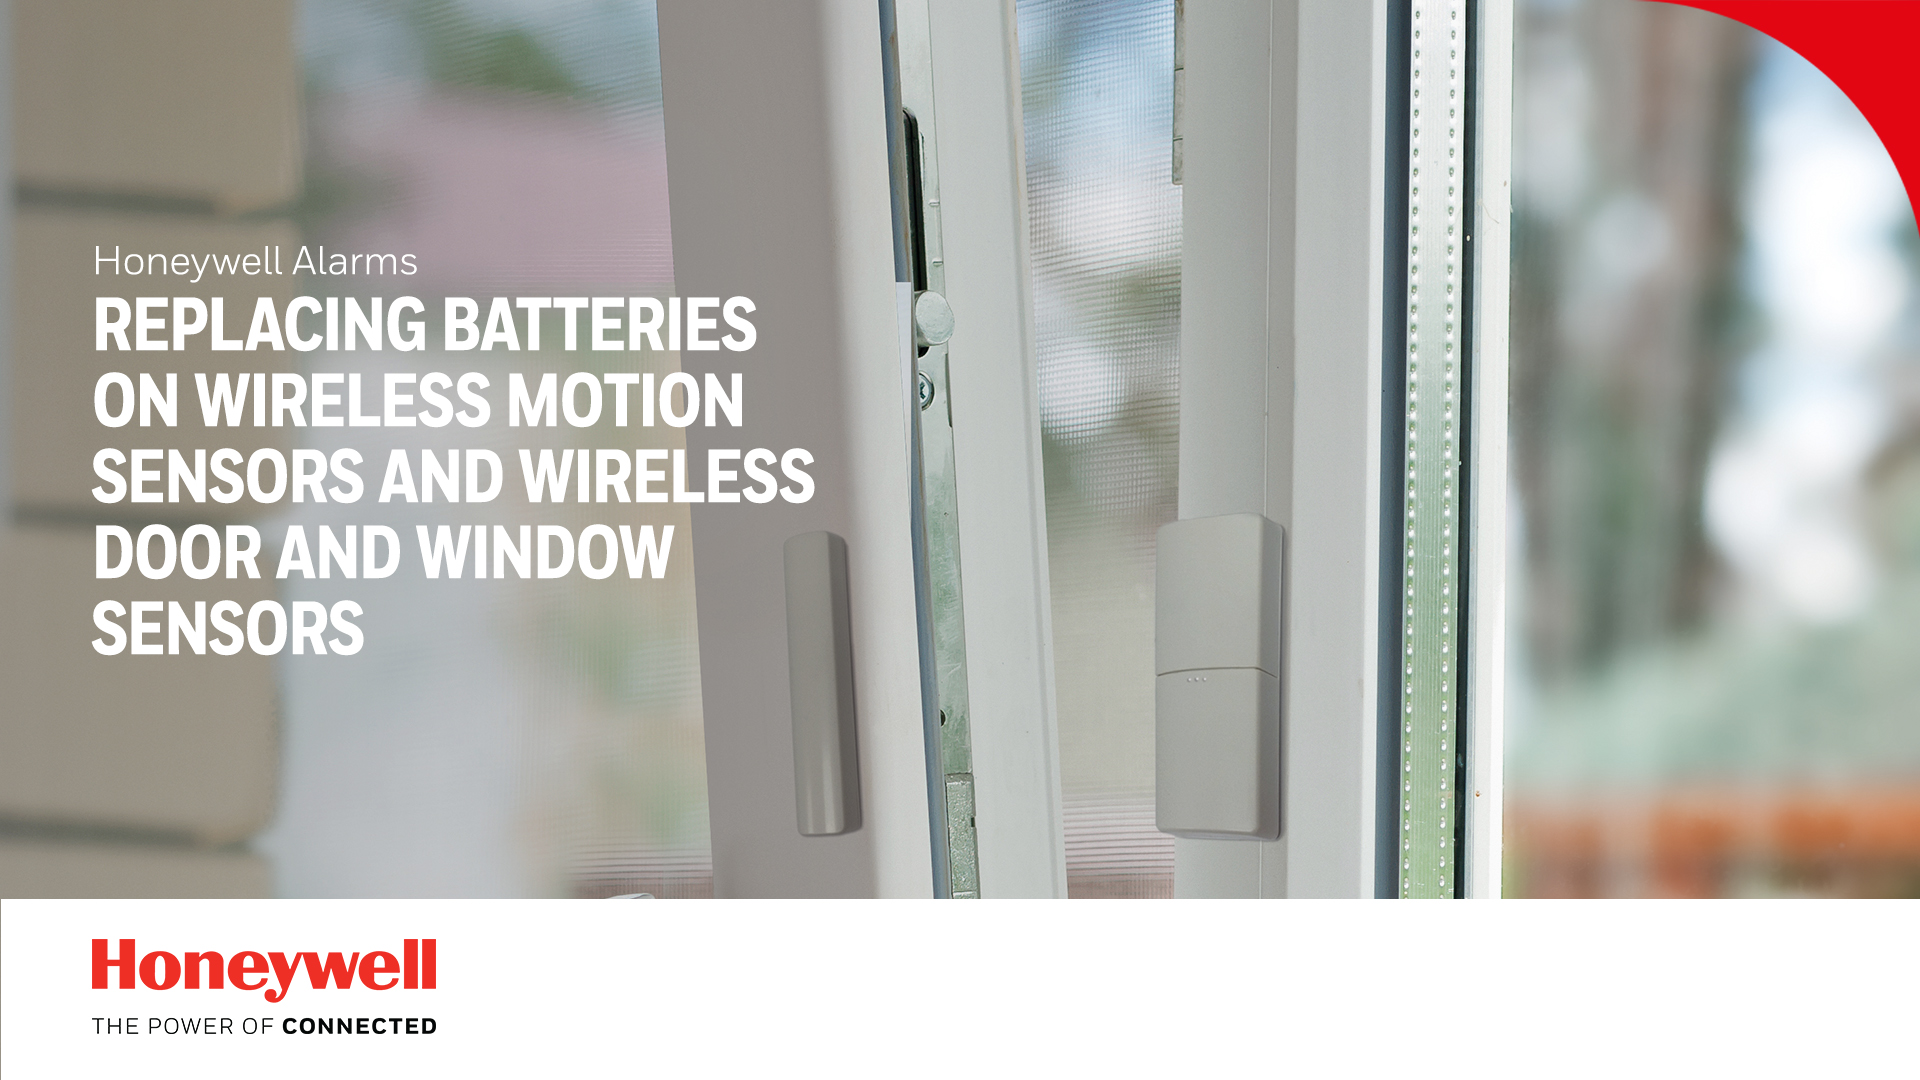 Replacing batteries on wireless motion, door and window sensors